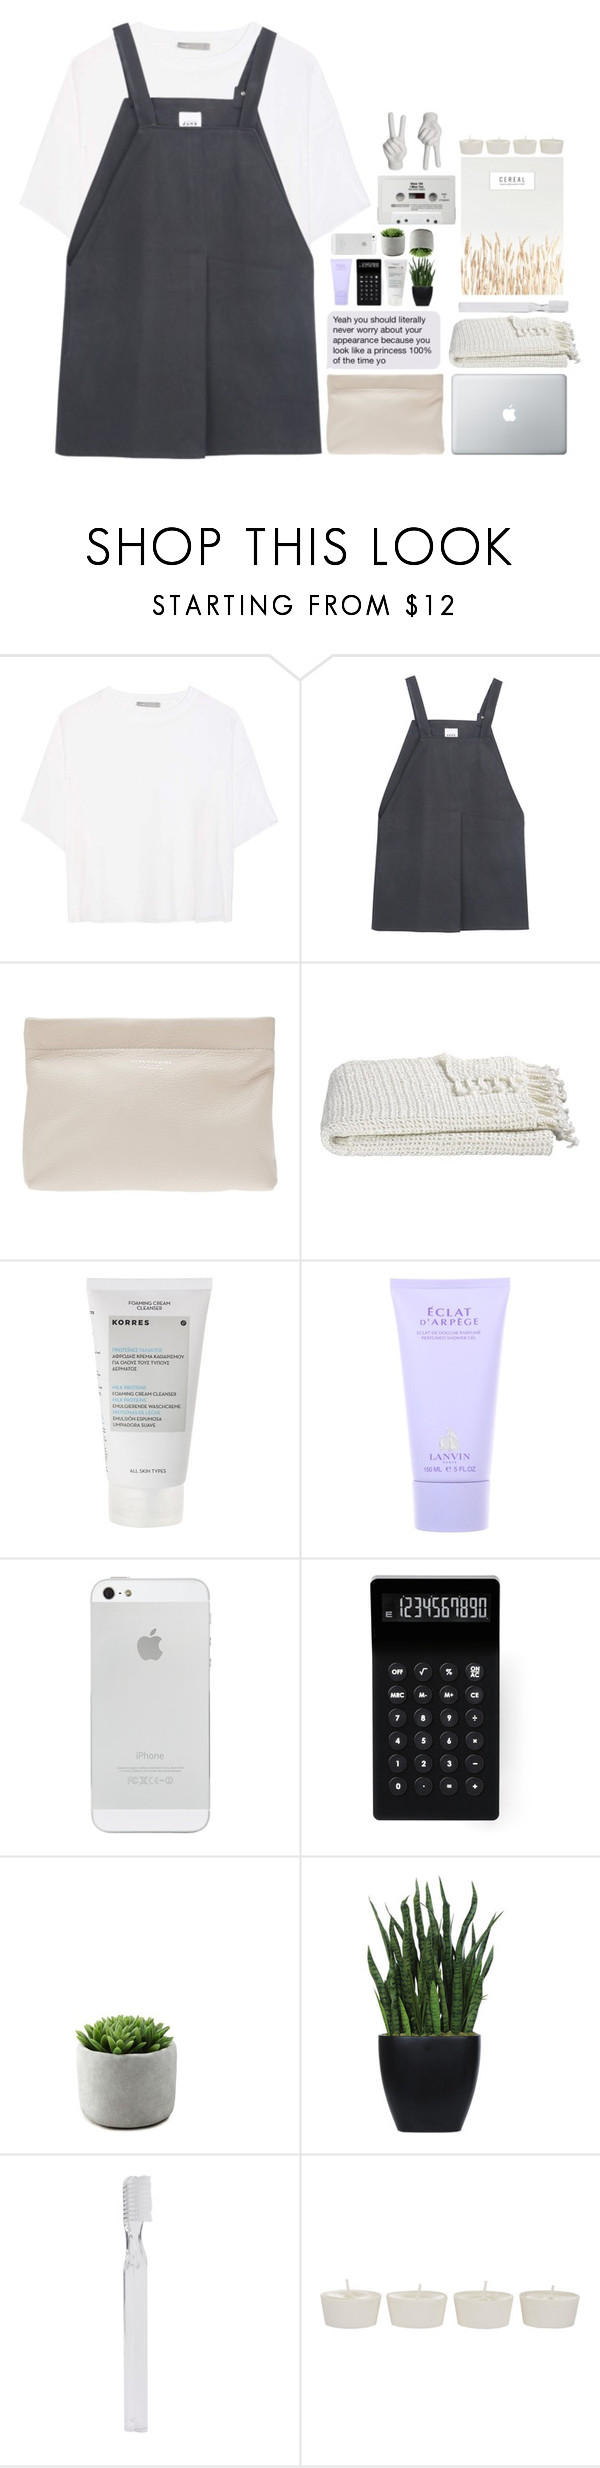 """I see things that nobody else sees"" by constellation-s ❤ liked on Polyvore featuring Vince, WNDERKAMMER, Acne Studios, Crate and Barrel, Korres, Lanvin, LEXON, Lux-Art Silks, Supersmile and Takayaka"